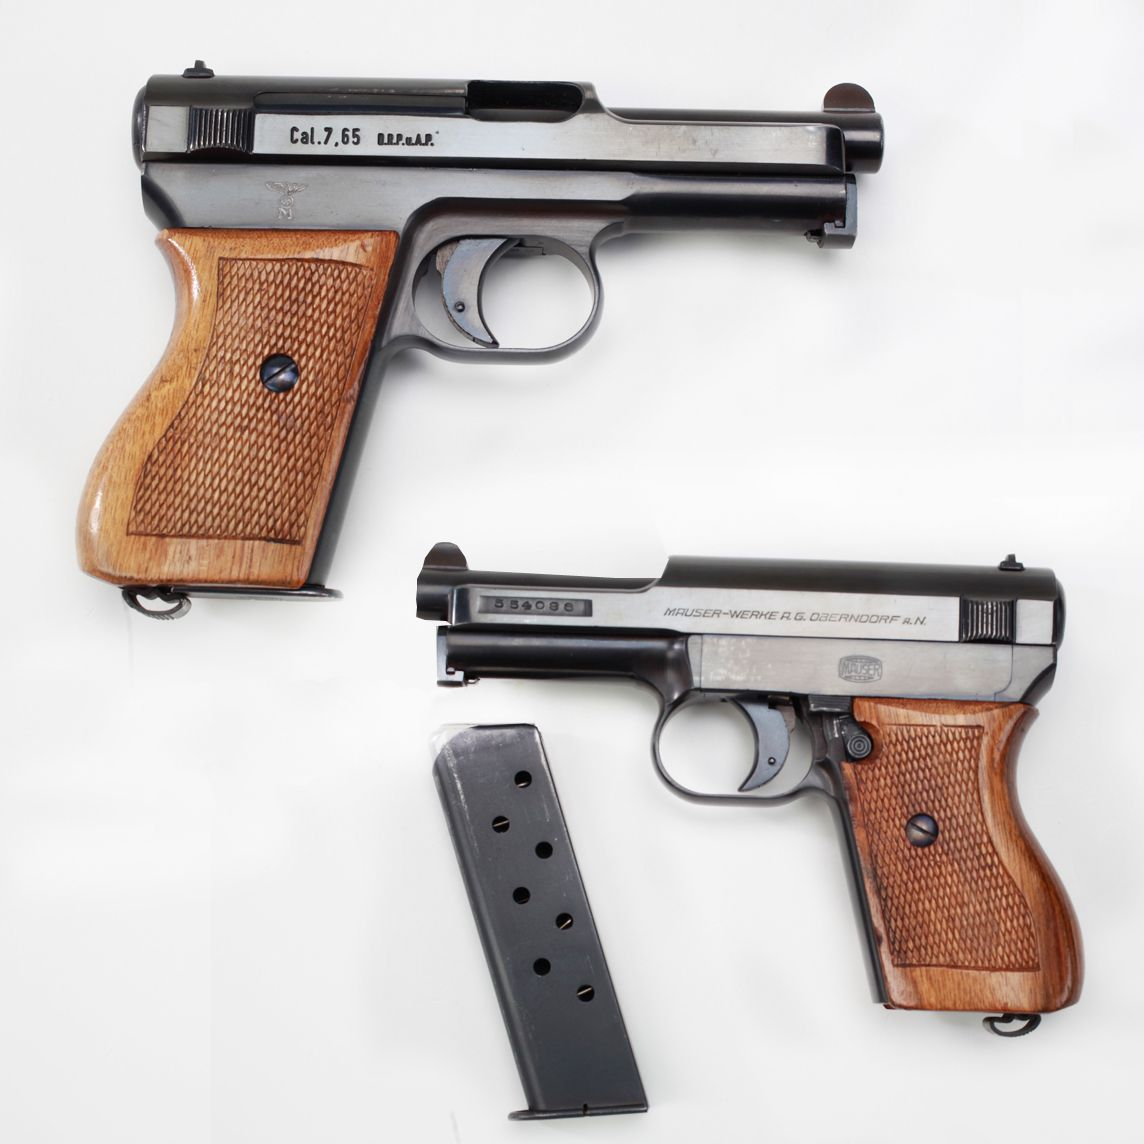 Mauser Model 1934 Pistol - Made in Oberndorf, Germany – our GOTD was